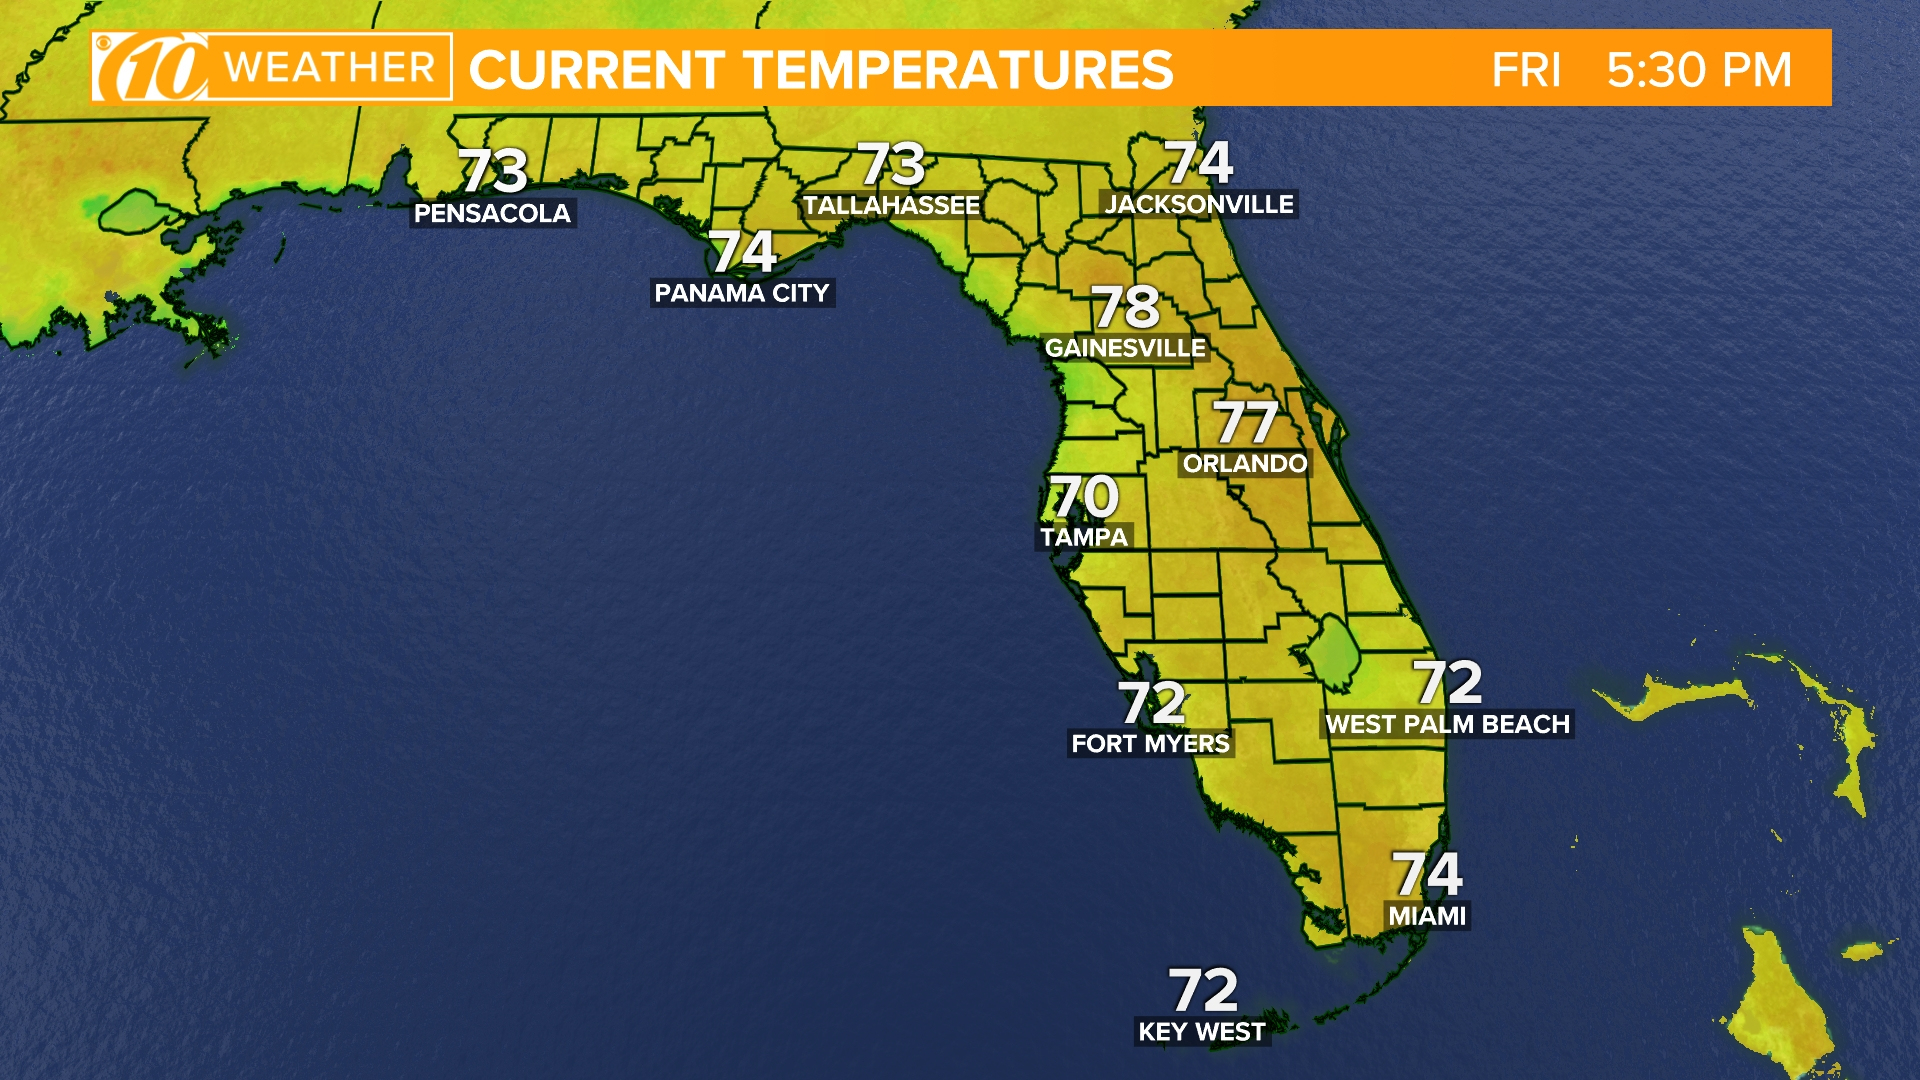 Weather Maps On 10News In Tampa Bay And Sarasota - Florida Weather Map Temperature